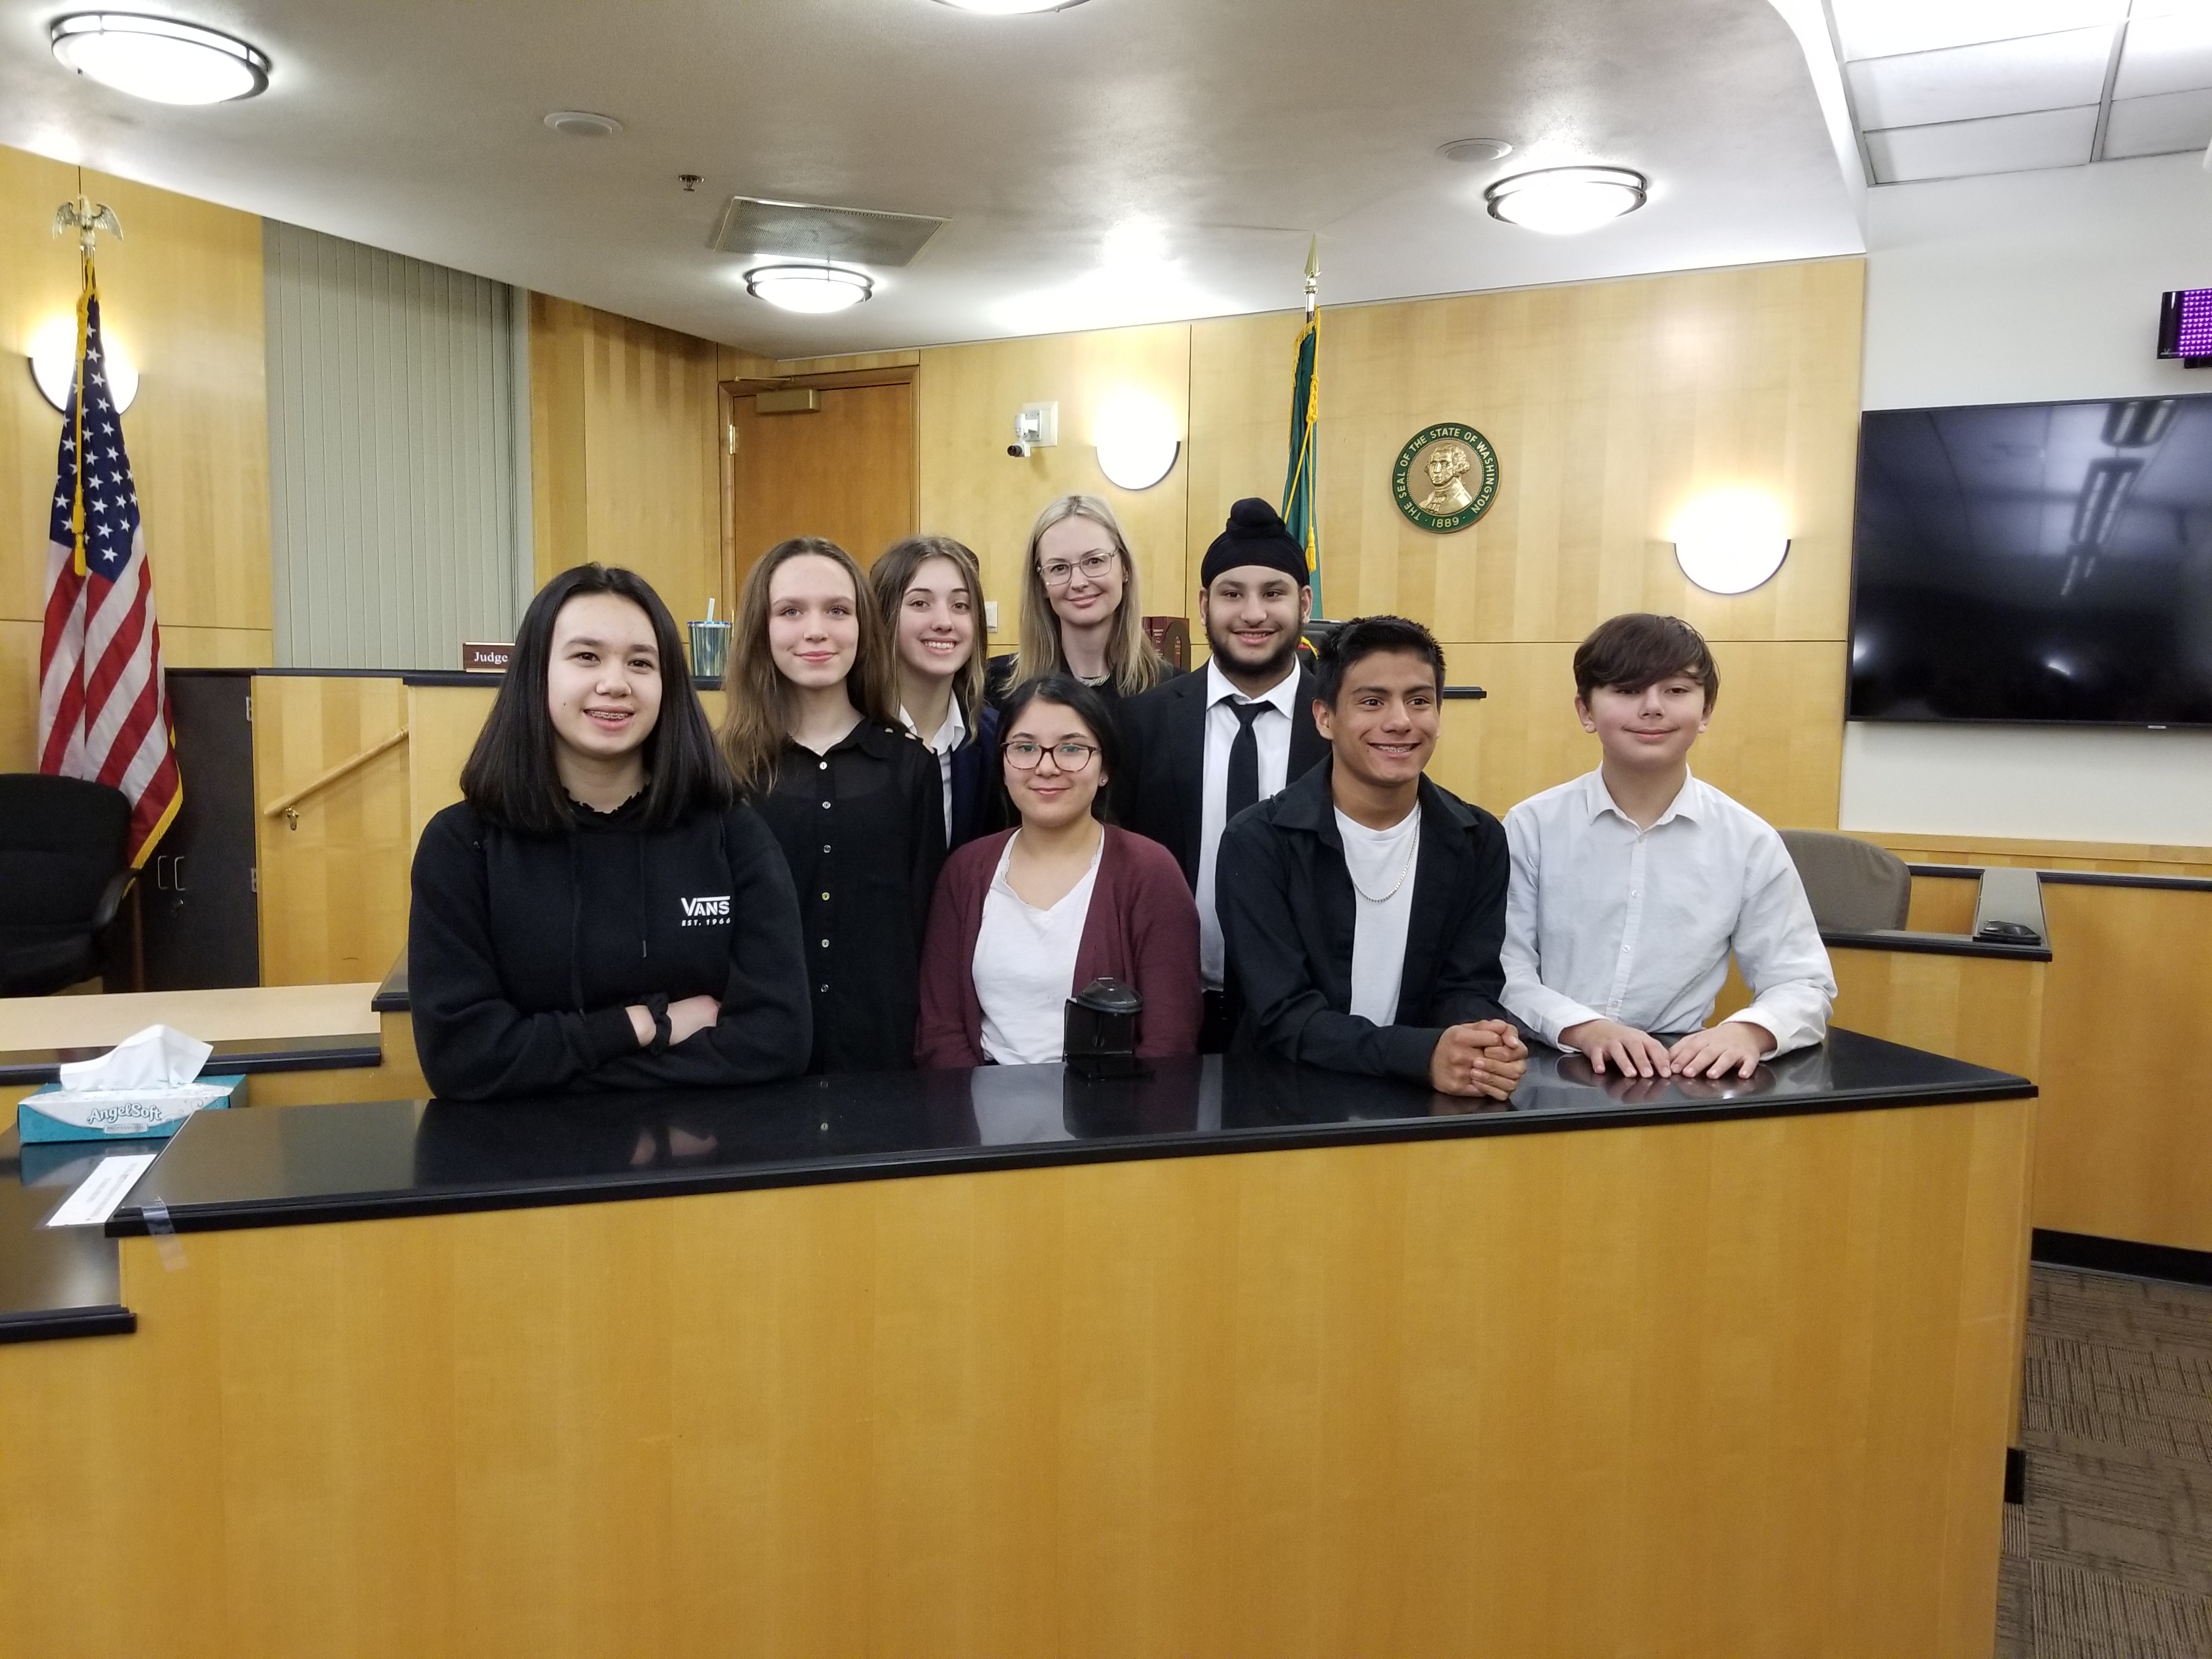 A photo of a group of students in a mock trial